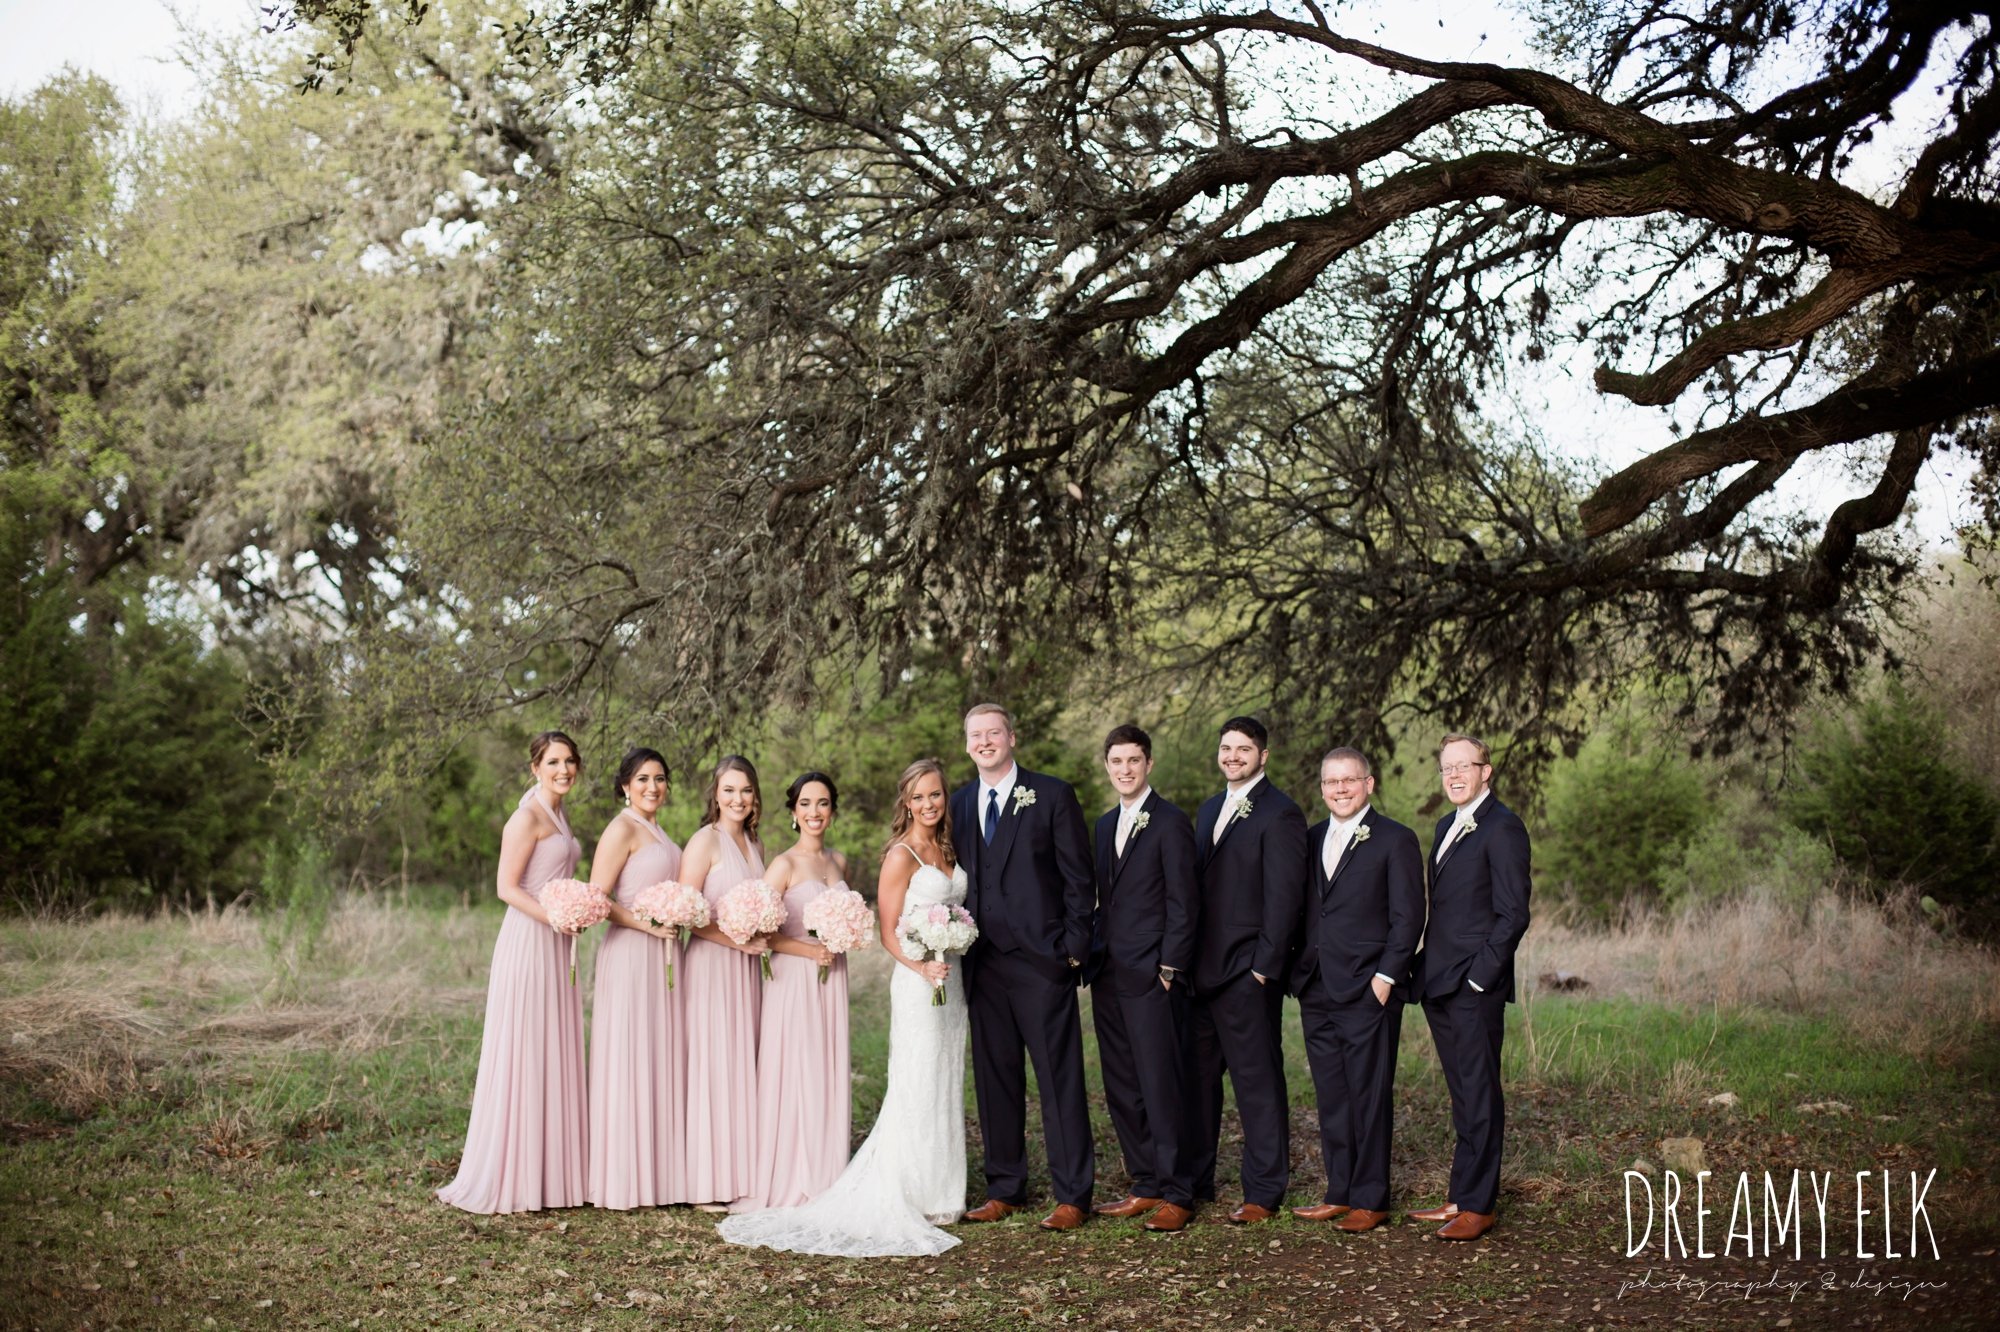 groom and groomsmen in navy suits, bride and bridesmaids, mix and matched floor length blush bridesmaid dresses, backless column sheath wedding dress, cloudy march wedding photo, canyon springs golf club wedding, san antonio, texas {dreamy elk photography and design}